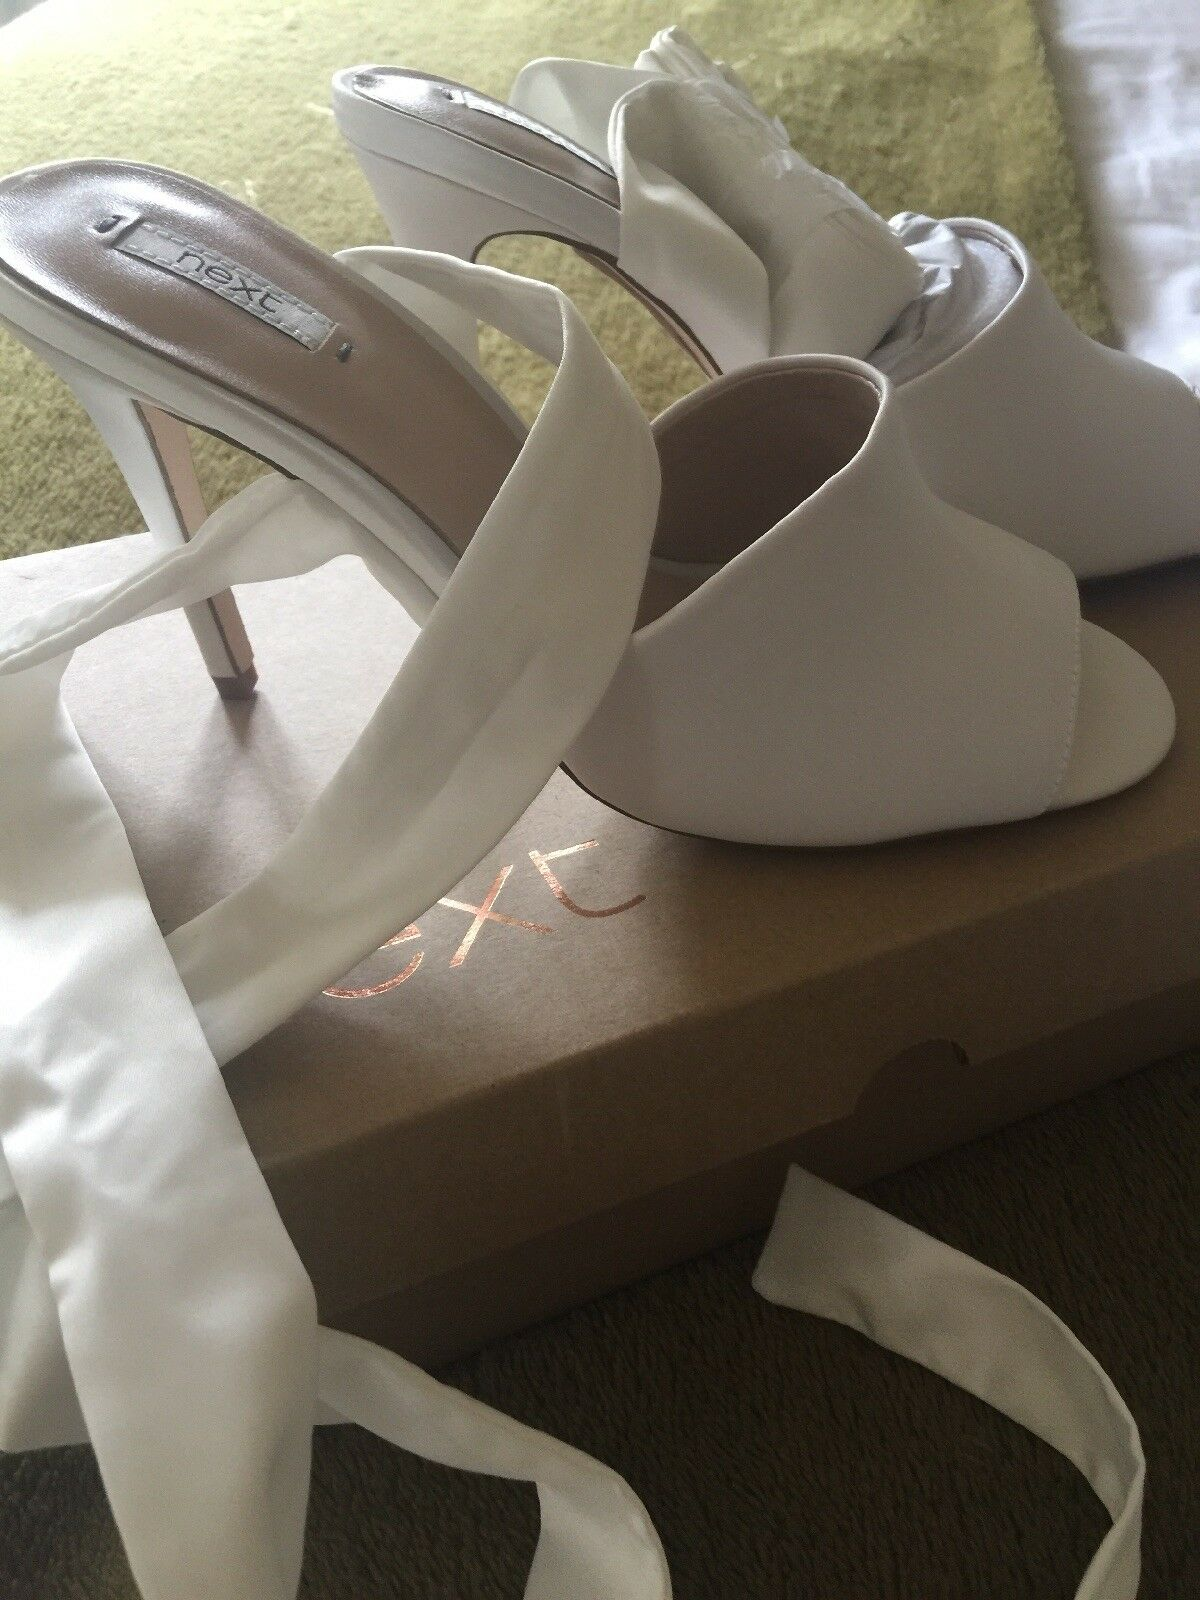 Next Shoes With New Ribbon Ankle Ties Party/wedding  5 New With In Box e558e1